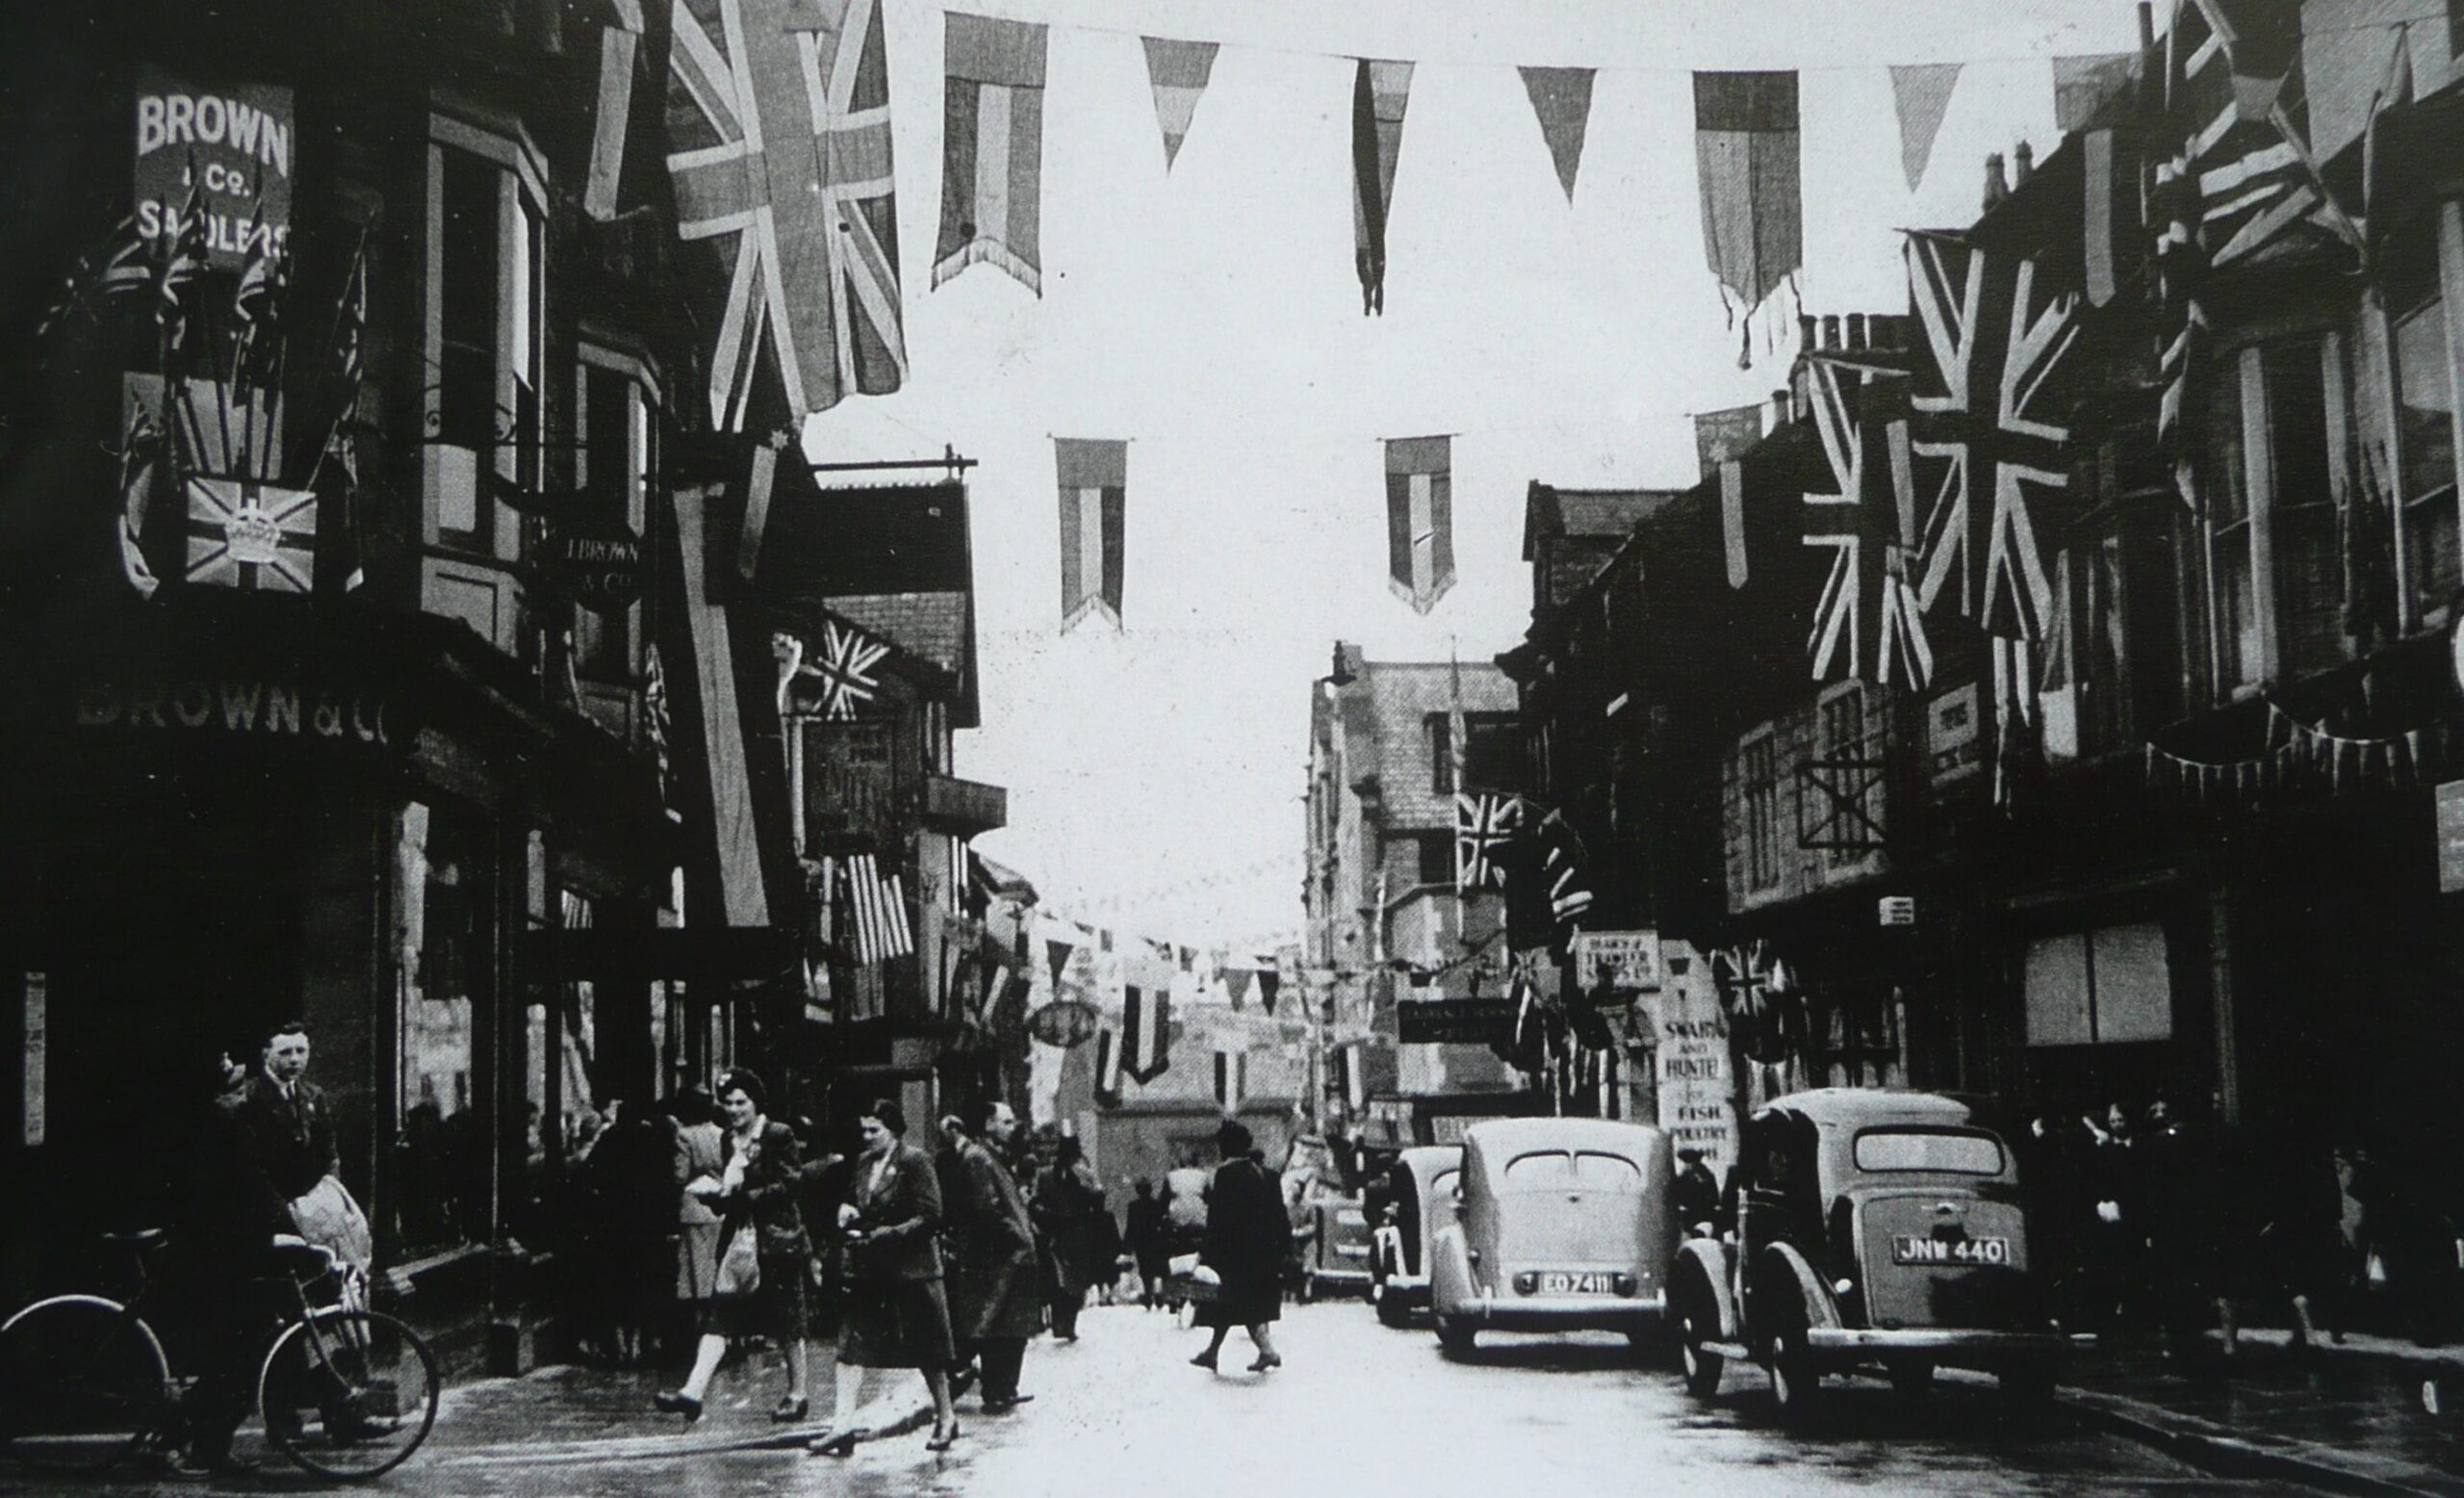 Harrogate History: VE day 1945 – a day of rejoicing after the dark years of war